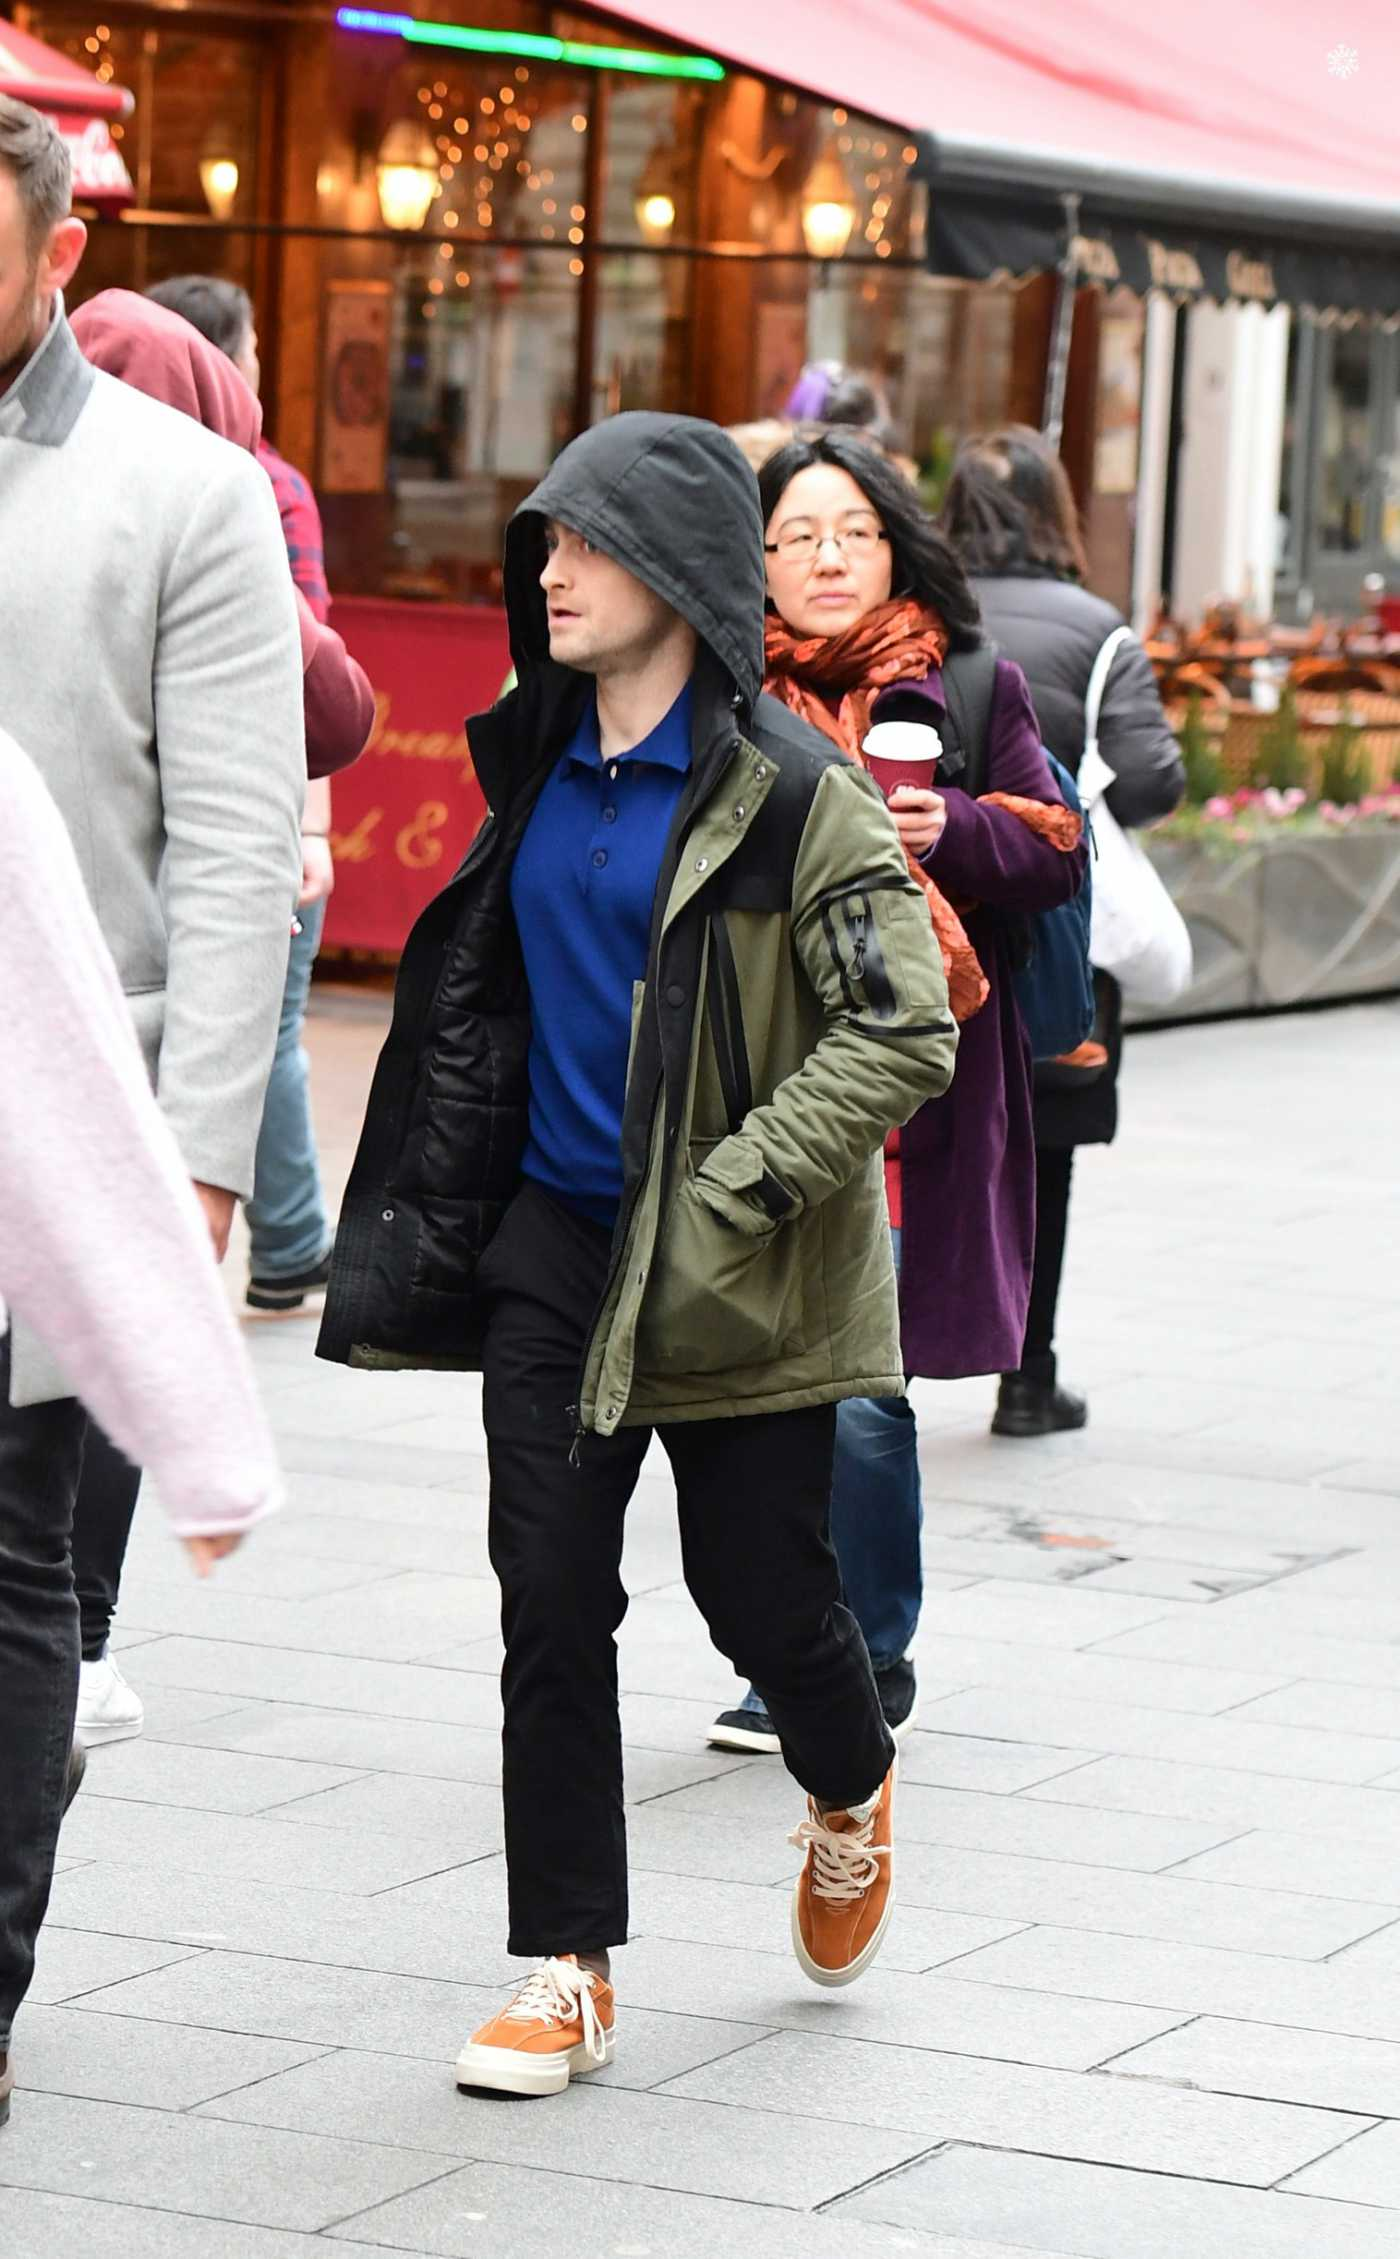 Daniel Radcliffe in an Orange Sneakers Arrives at the Global Radio in London 02/10/2020